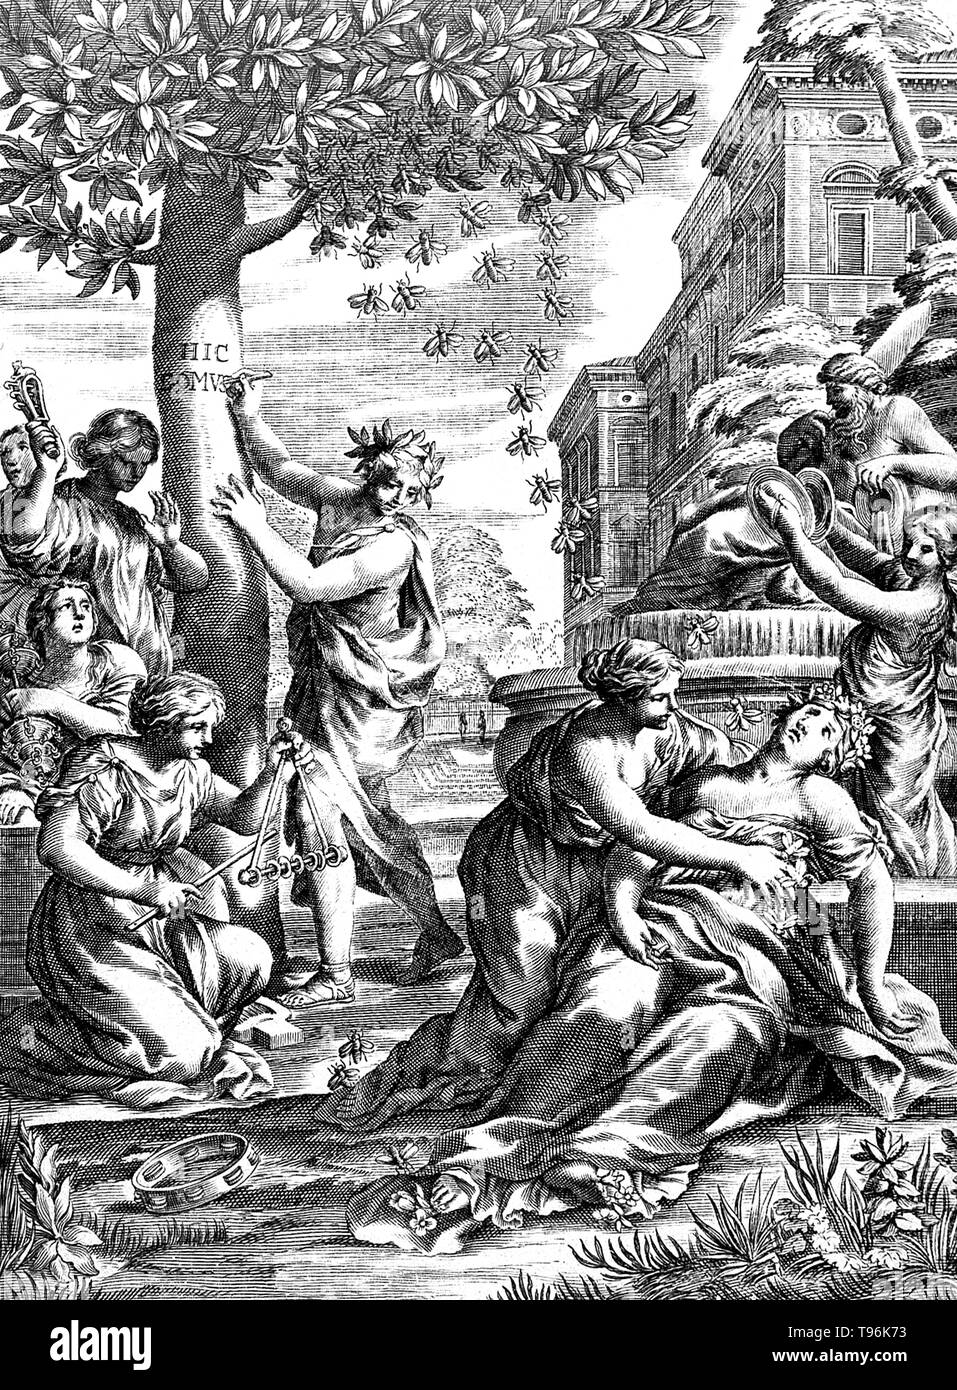 Group of women (nymphs) in classical robes, playing music next to a fountain. One woman has been stung by a bee and is lying on the ground. A bee sting is a sting from a bee (honey bee, bumblebee, sweat bee, etc.). The stings of most of these species can be quite painful, and are therefore keenly avoided by many people. A honey bee that is away from the hive foraging for nectar or pollen will rarely sting, except when stepped on or roughly handled. Stock Photo